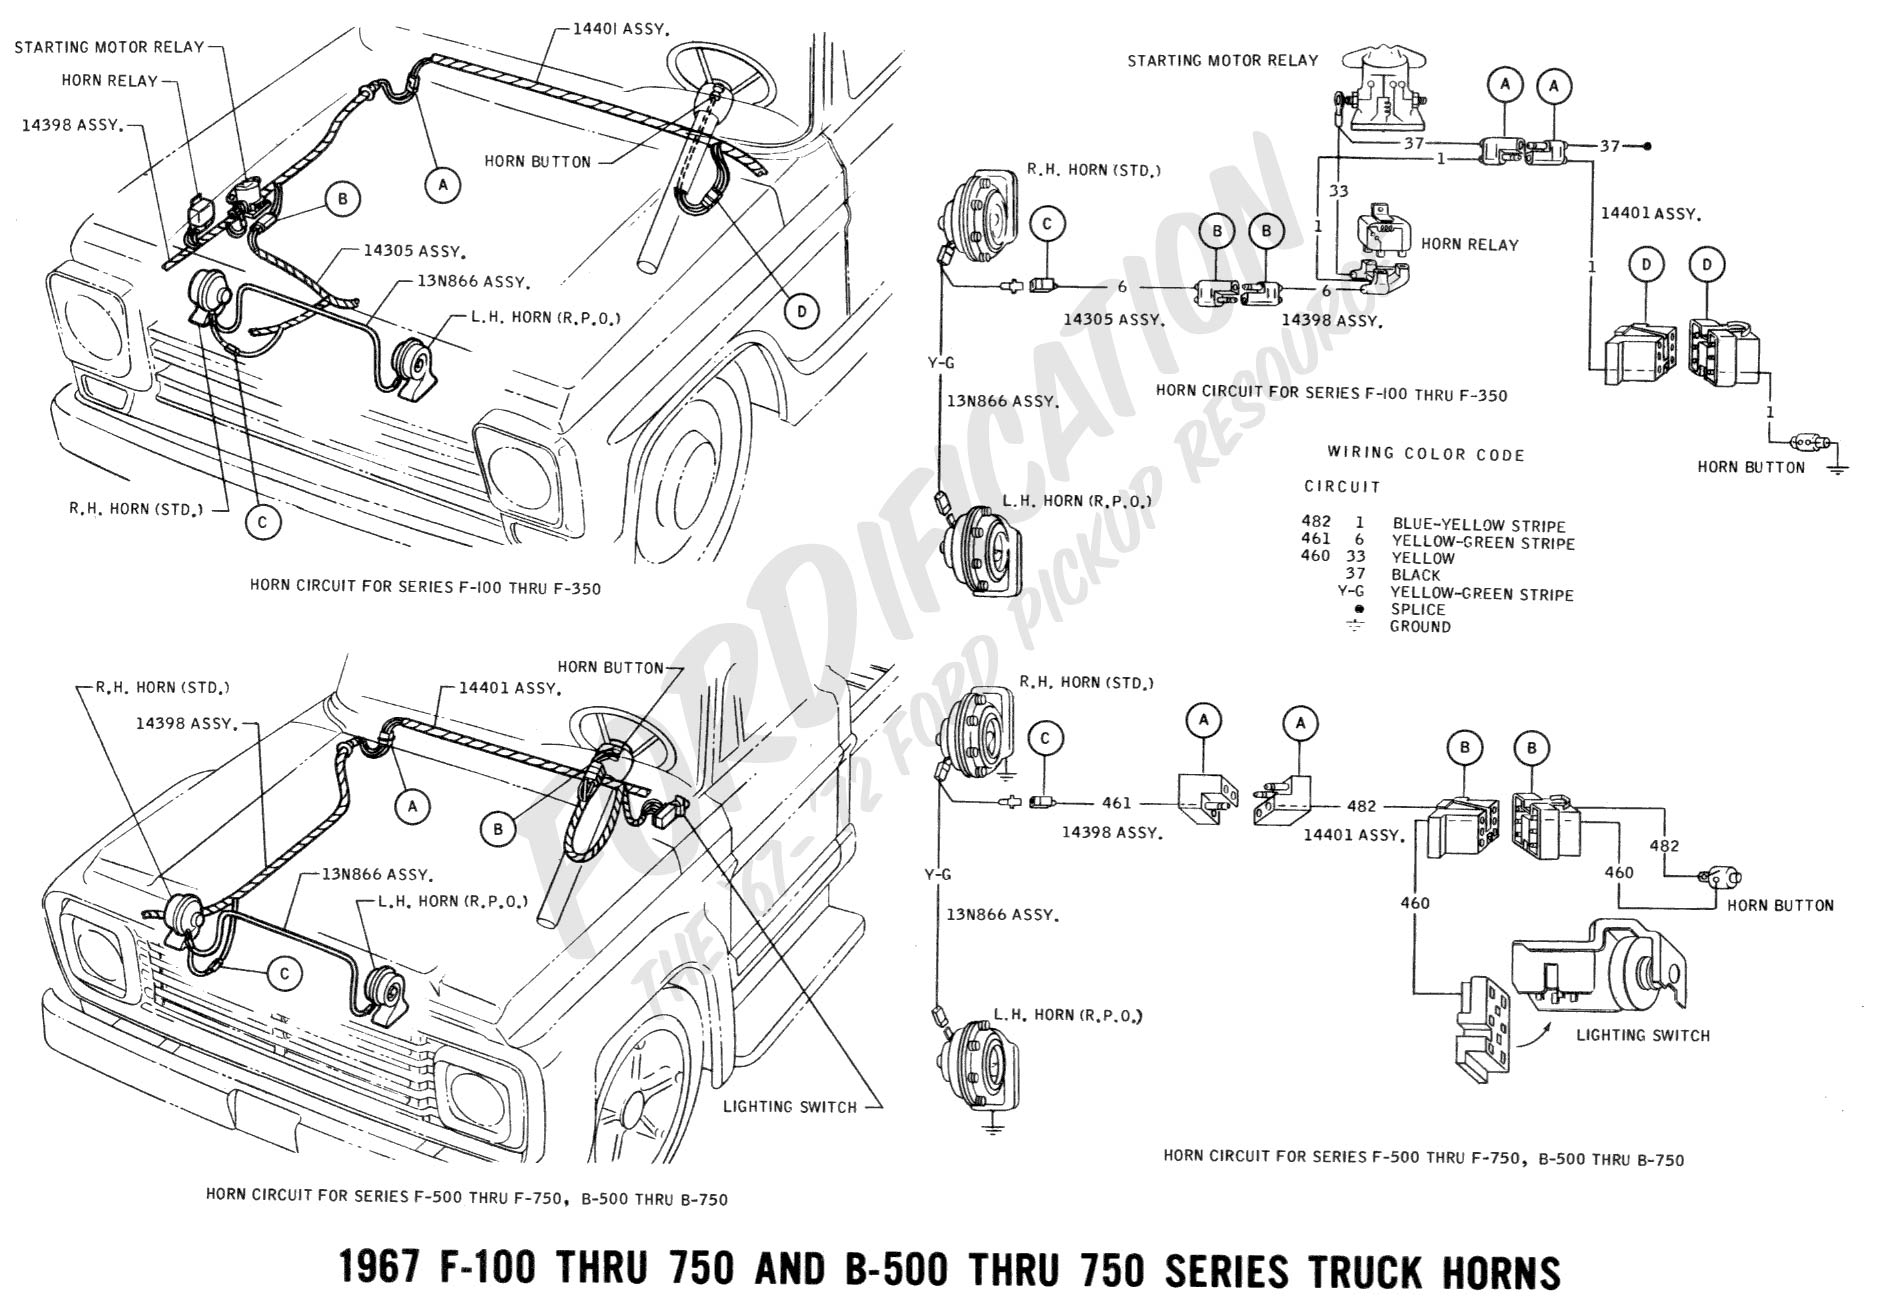 Wiring Diagram For 1973 Ford F 100 - Wiring Diagrams on